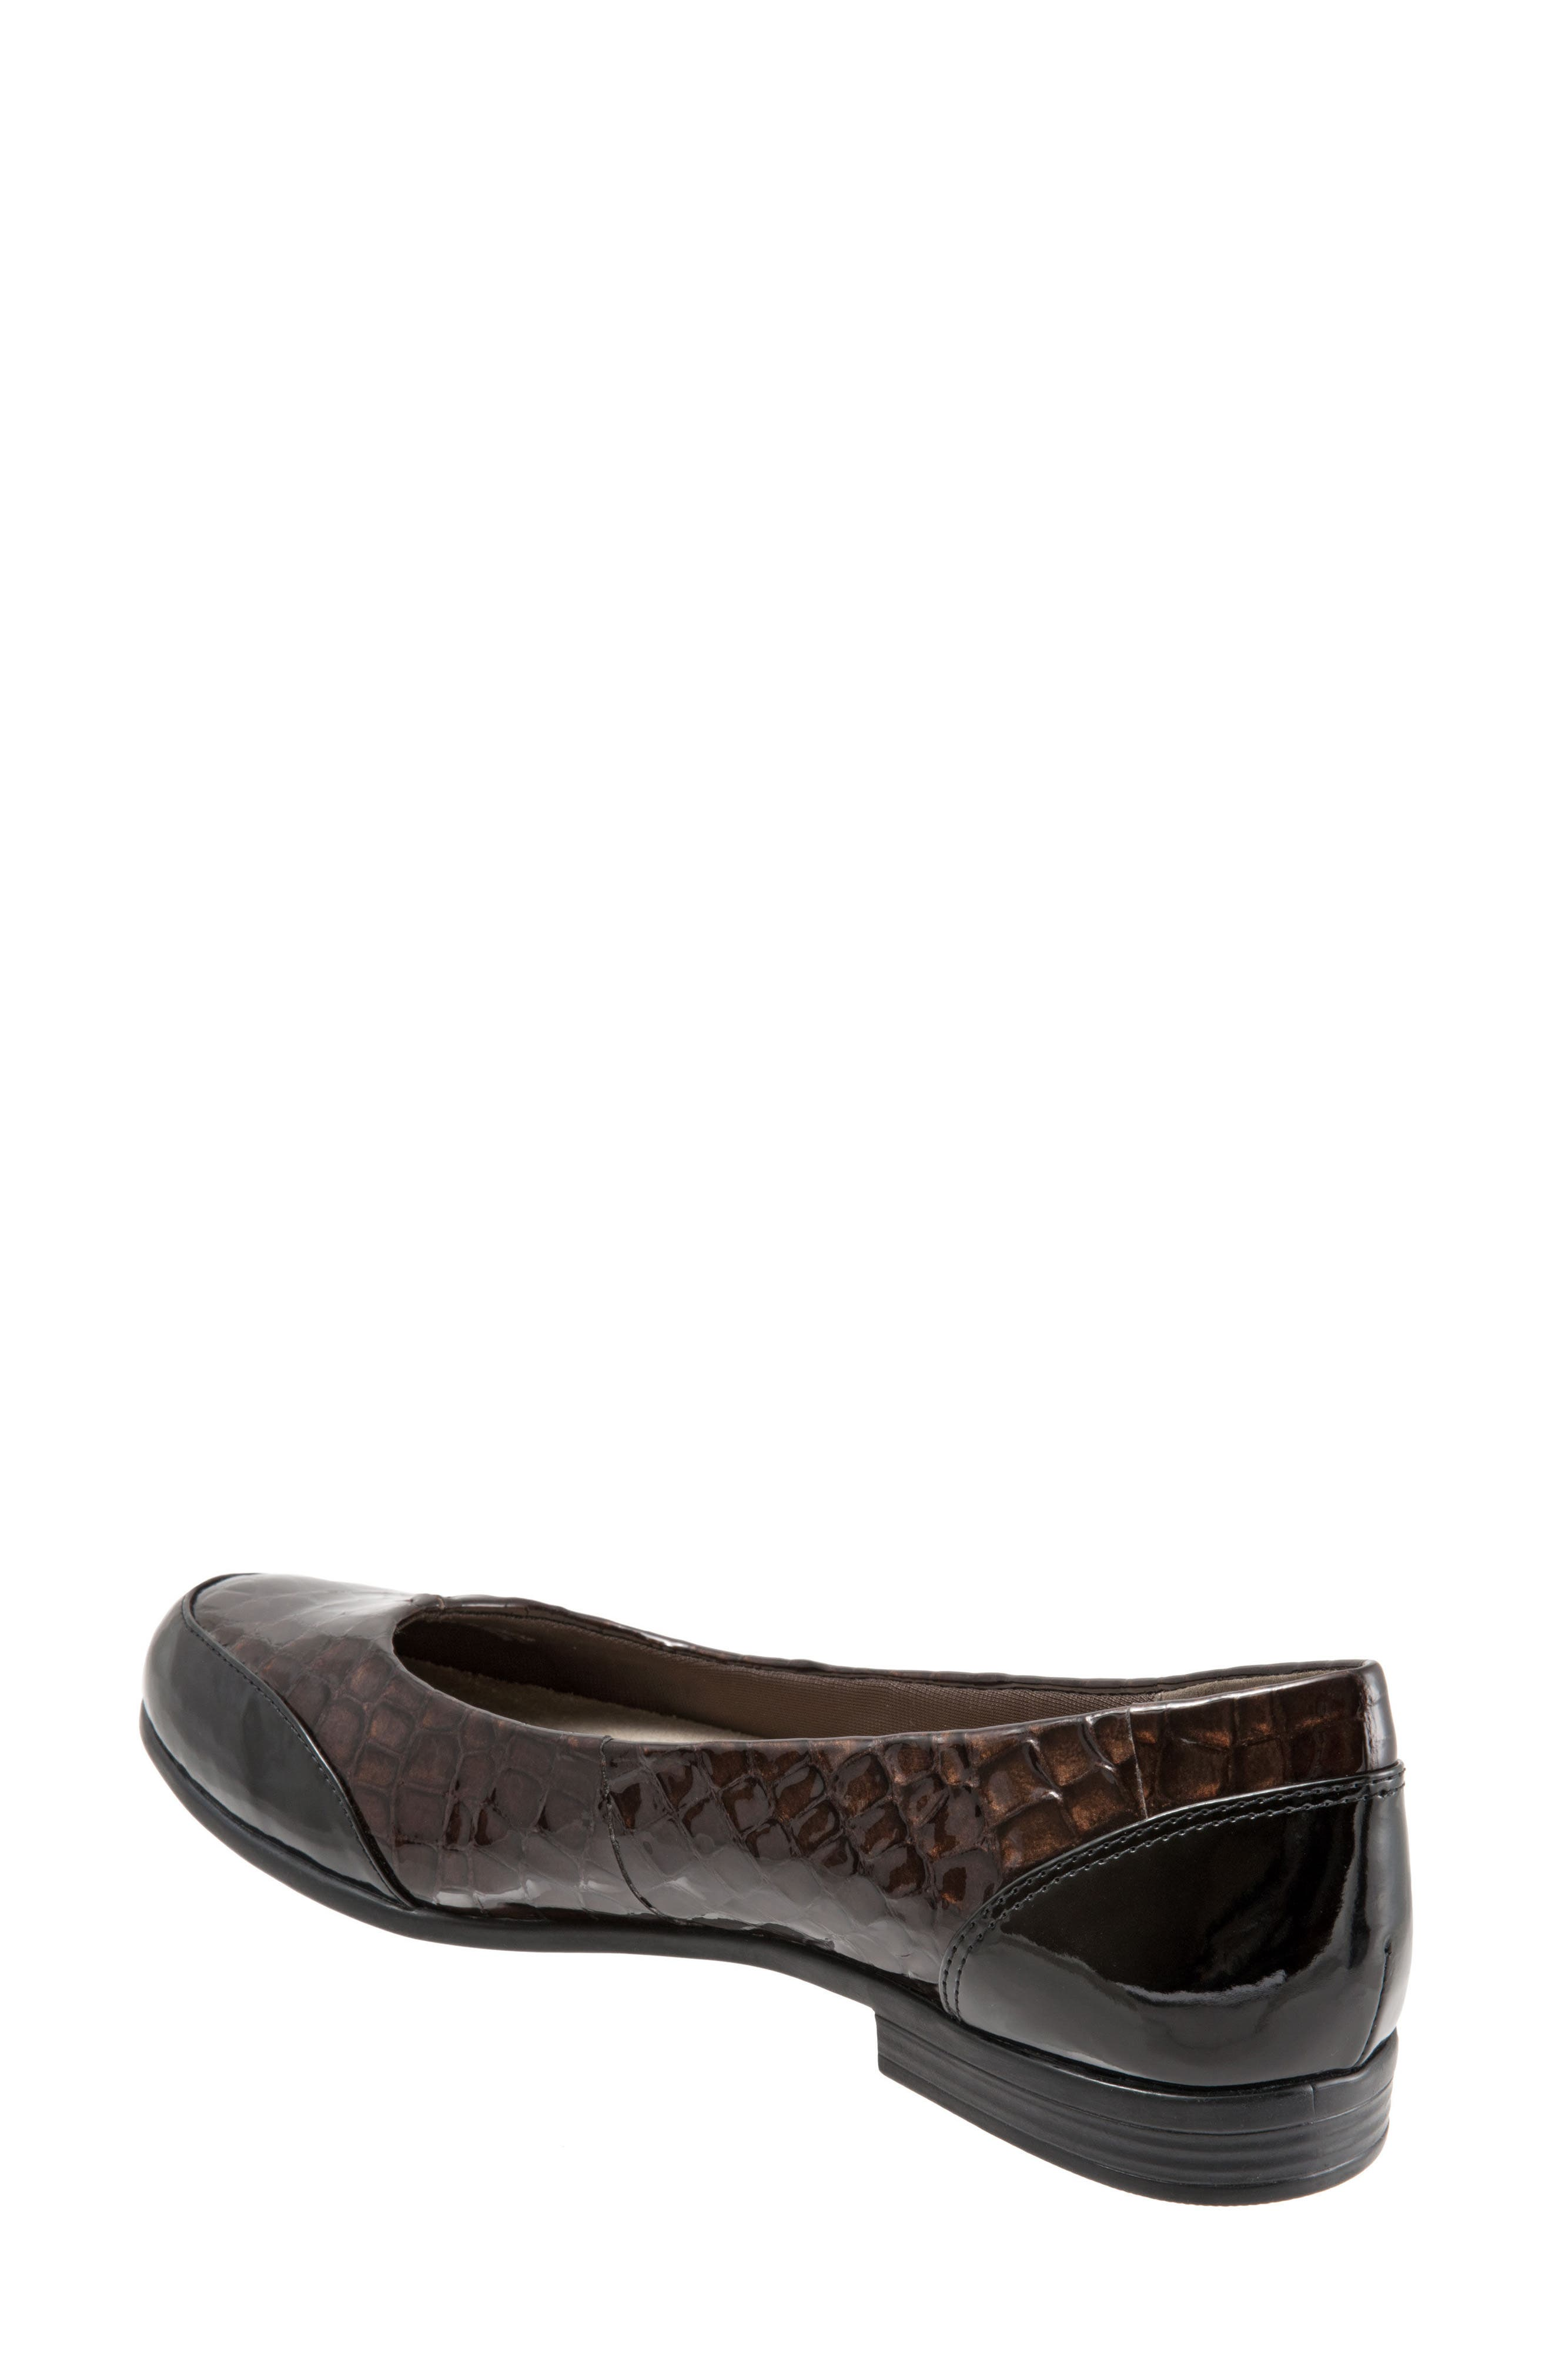 Alternate Image 2  - Trotters Arnello Flat (Women)